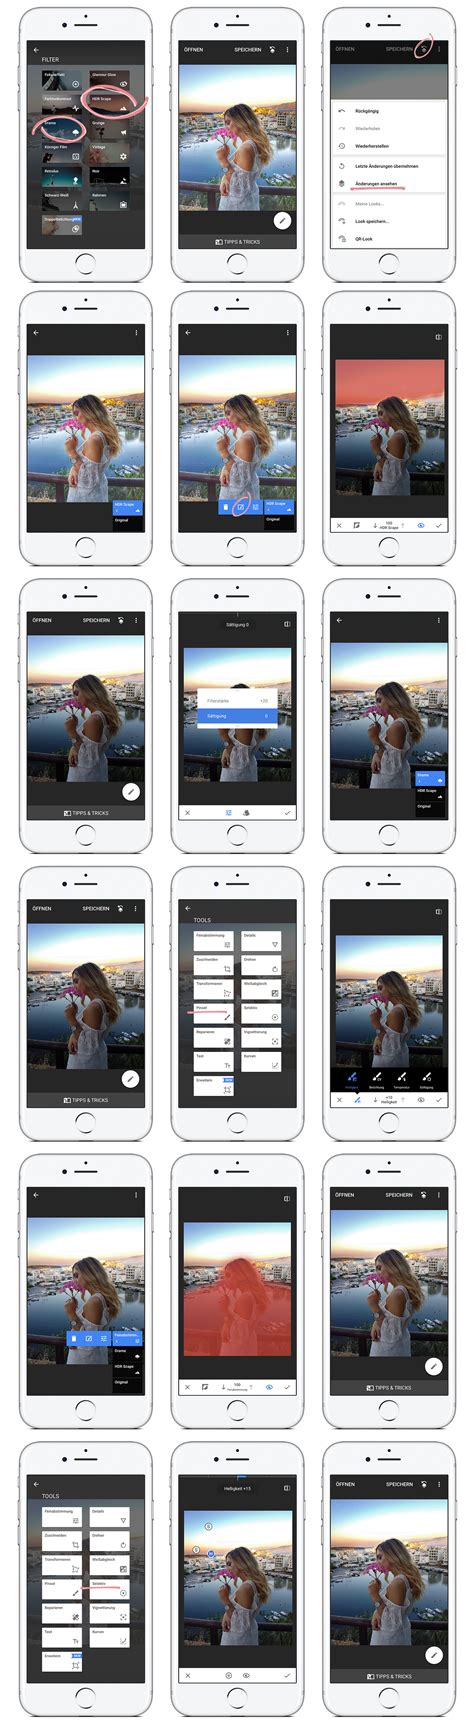 instagram gallery tutorial sky editing for instagram photos want get repeat